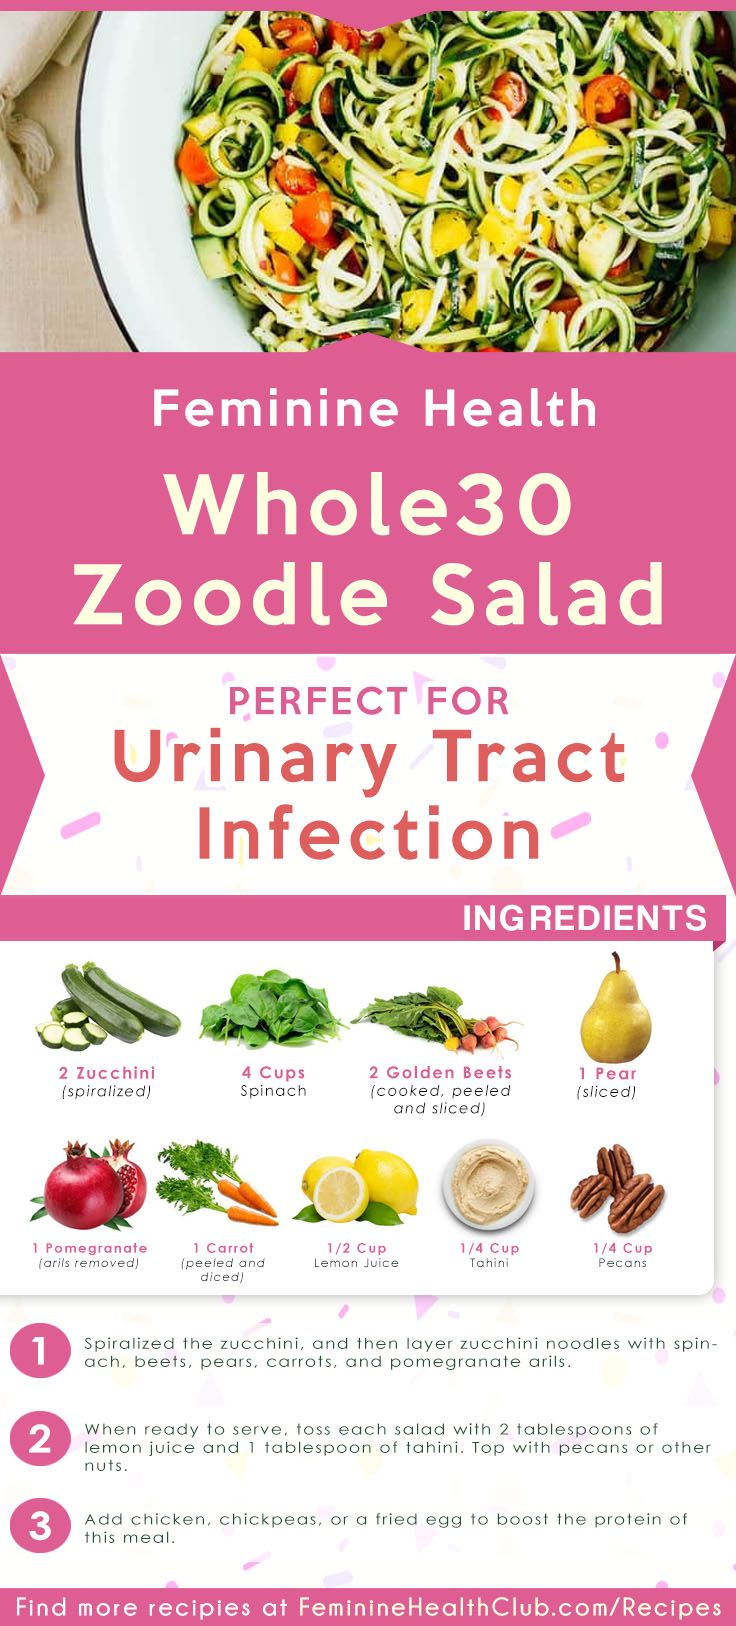 Whole30 Zoodle Salad Recipe For Urinary Tract Infection Recipe Recipes Recipes With Yeast Feminine Health